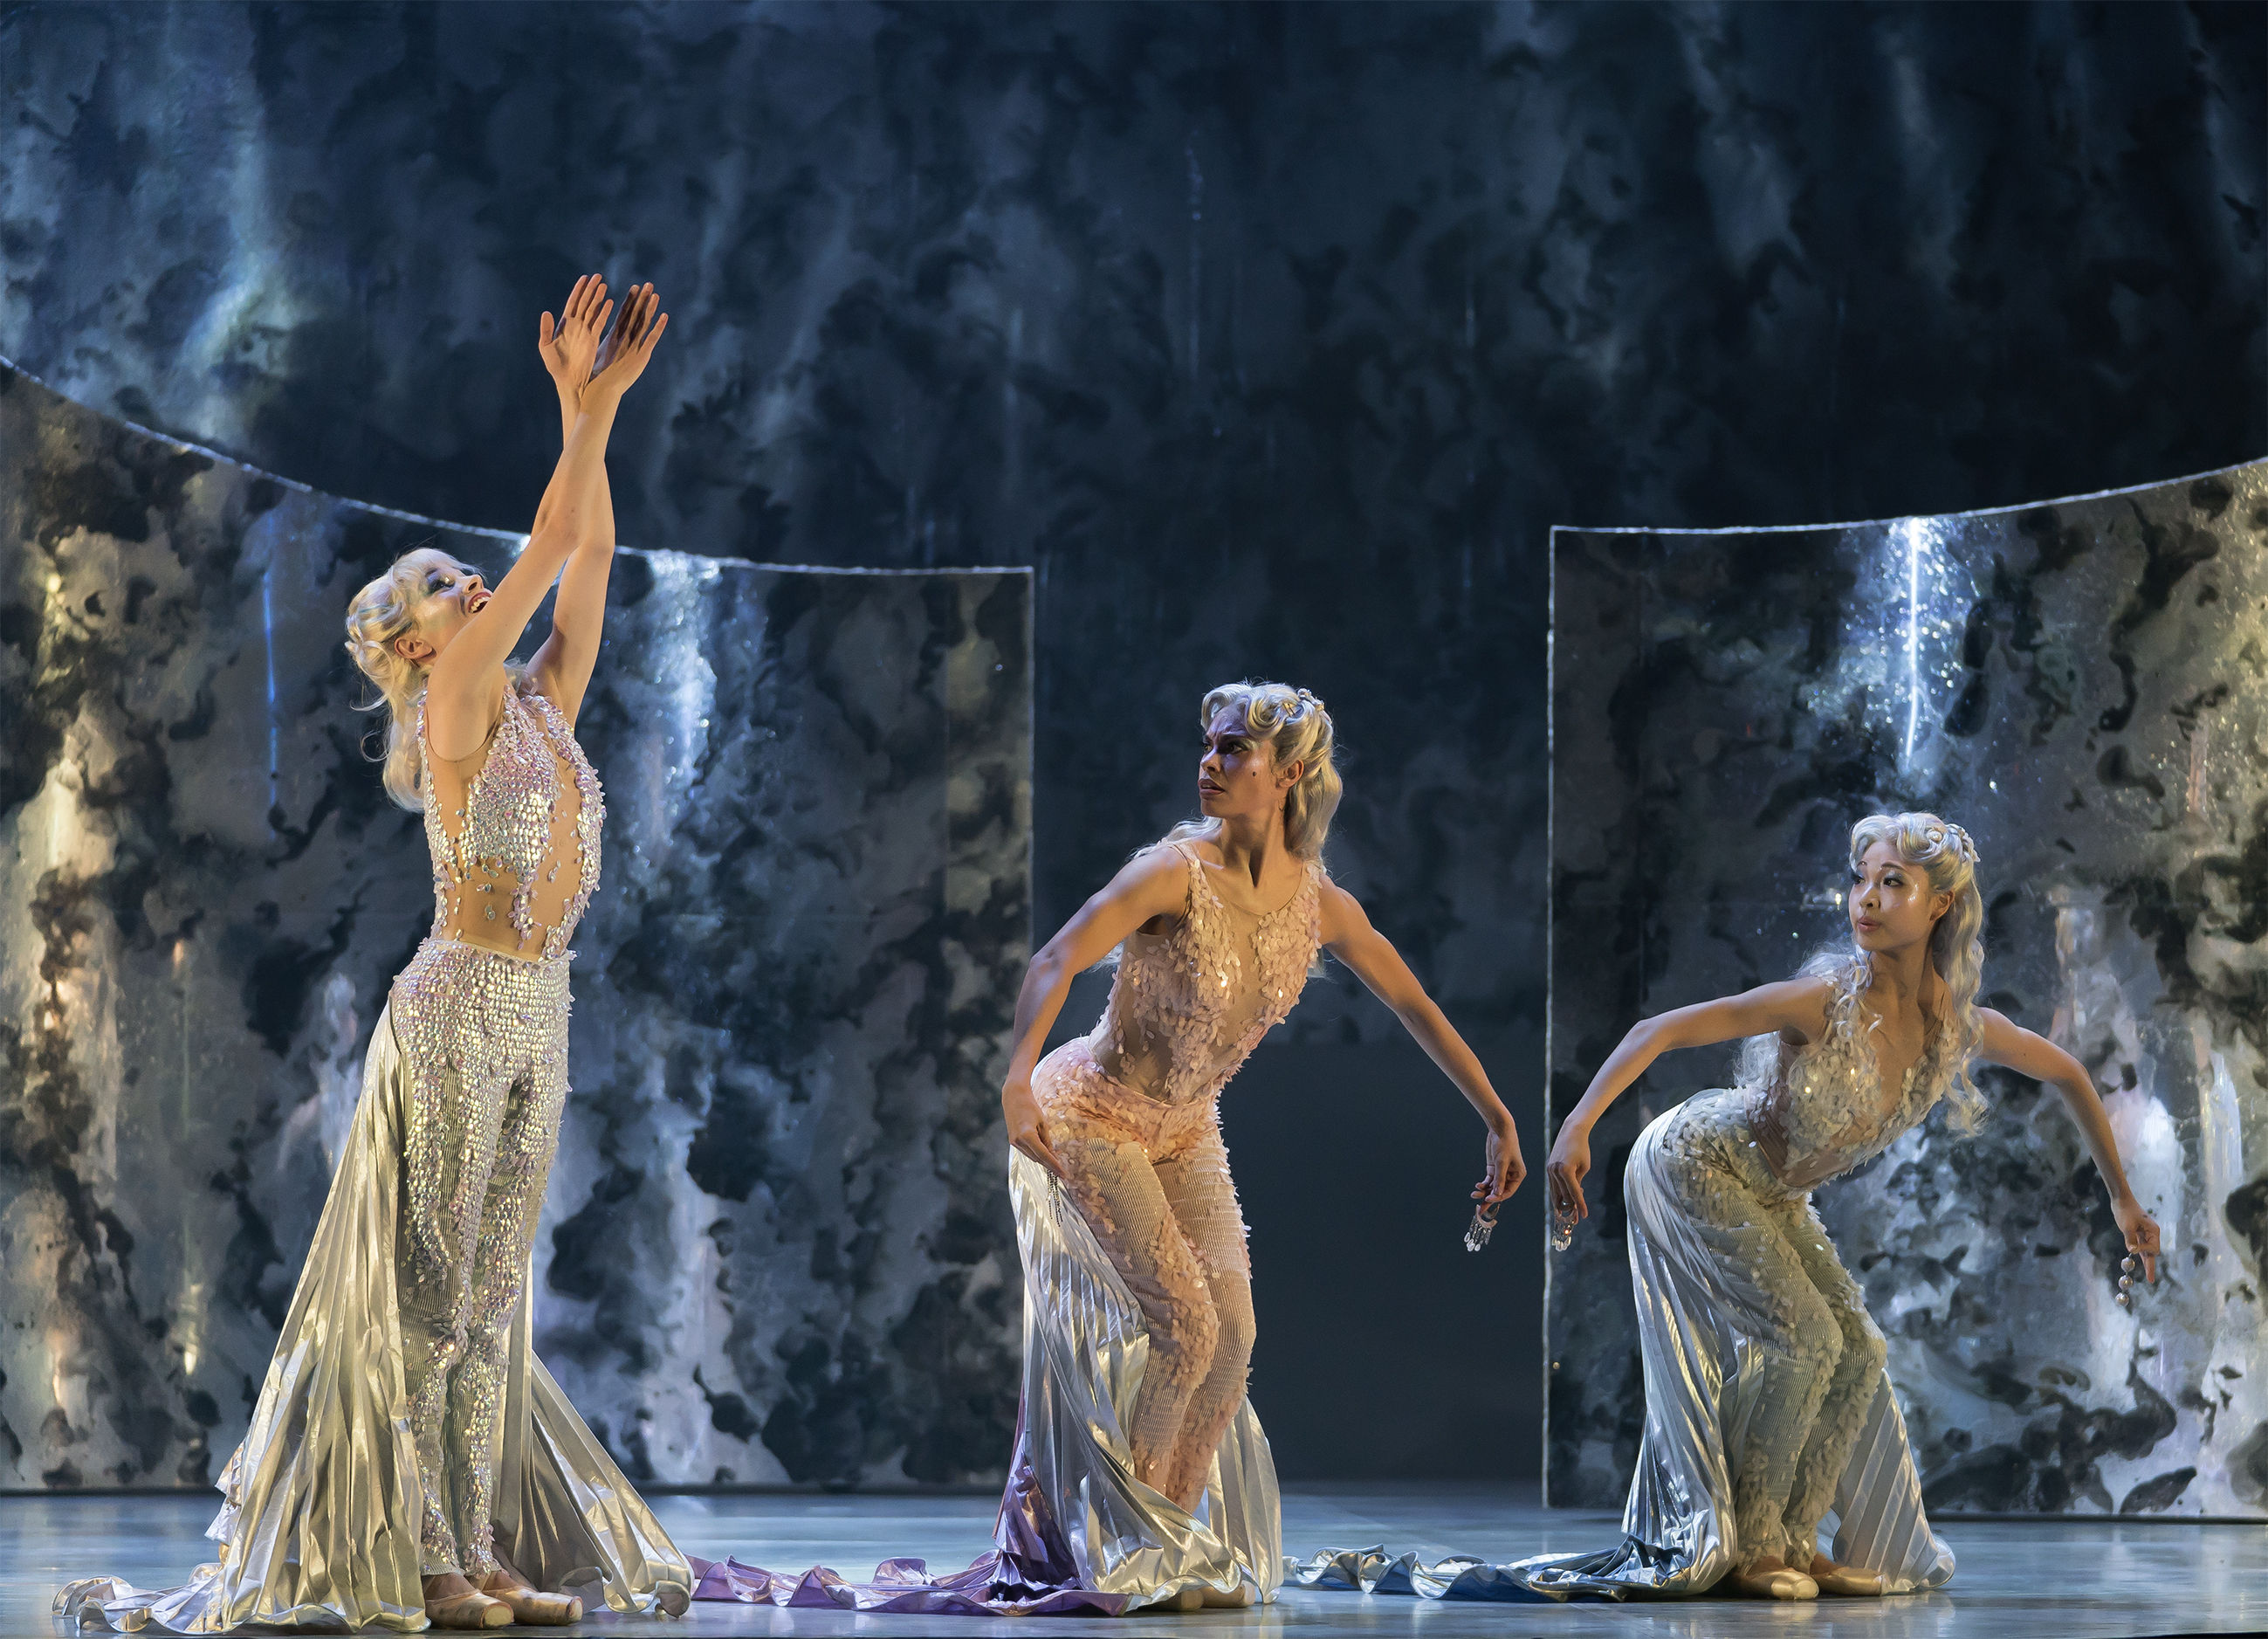 Northern Ballet dancers in The Little Mermaid